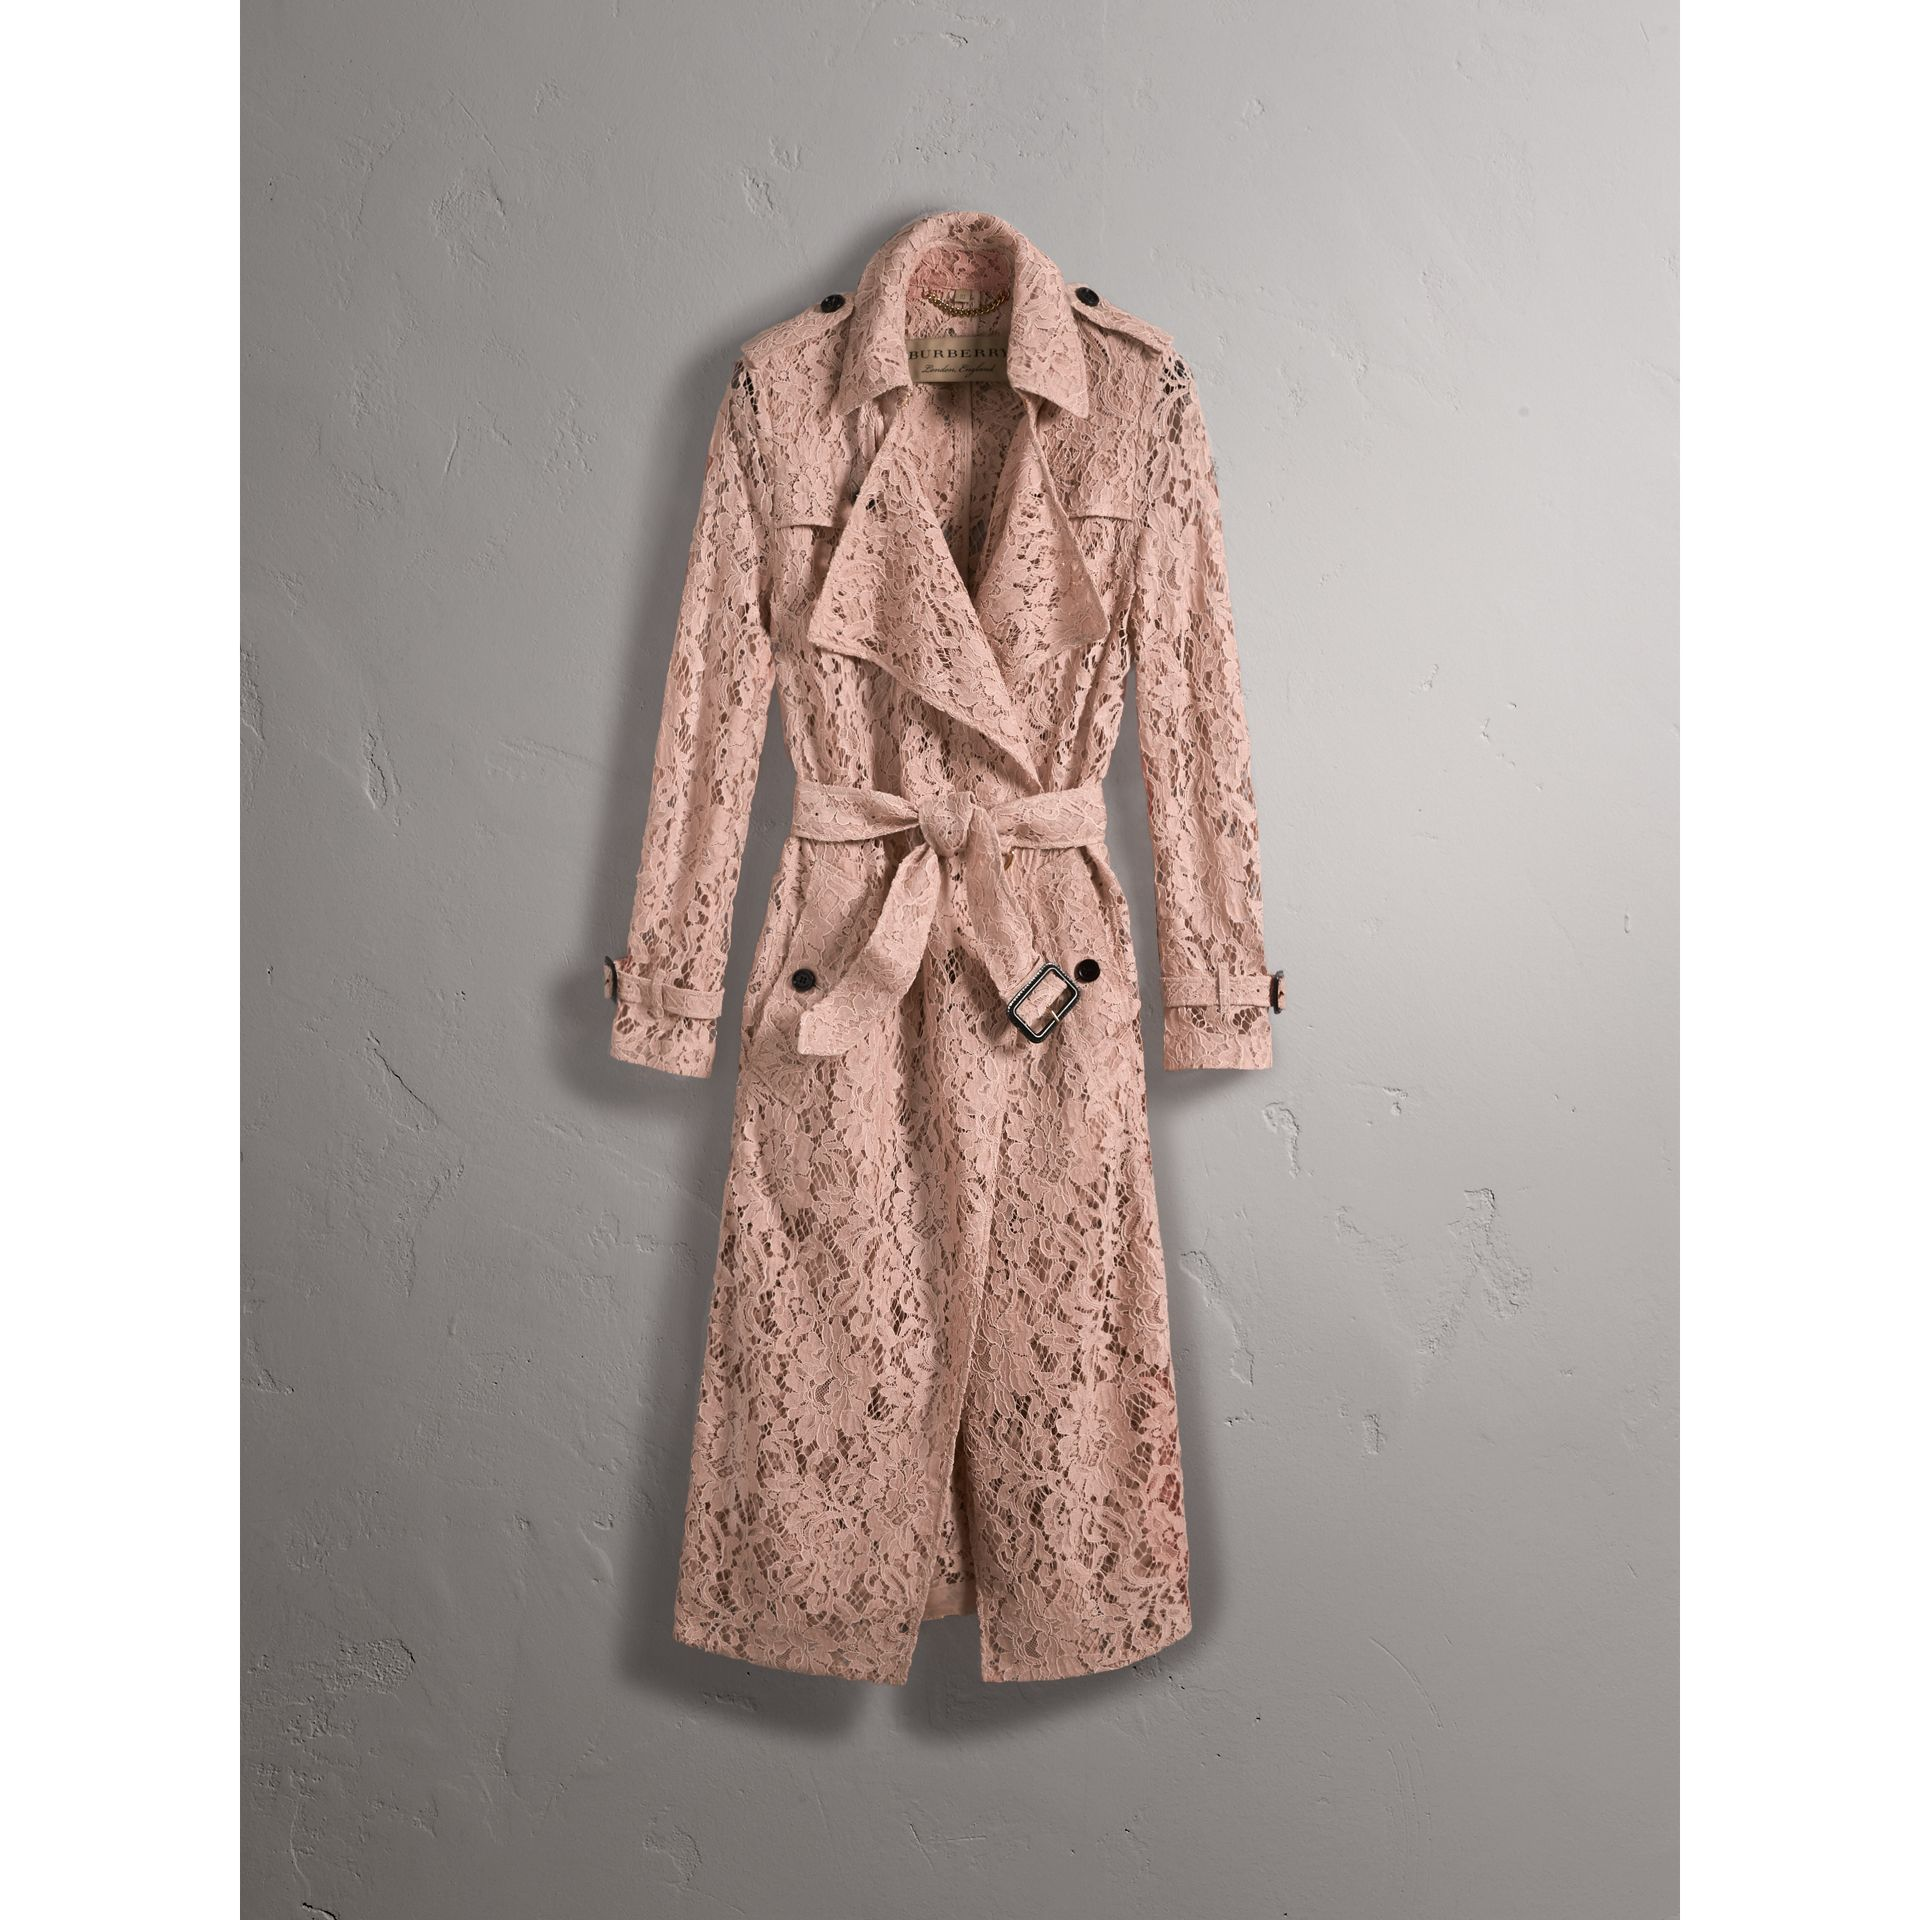 Macramé Lace Trench Coat in Pale Pink - Women | Burberry United Kingdom - gallery image 4